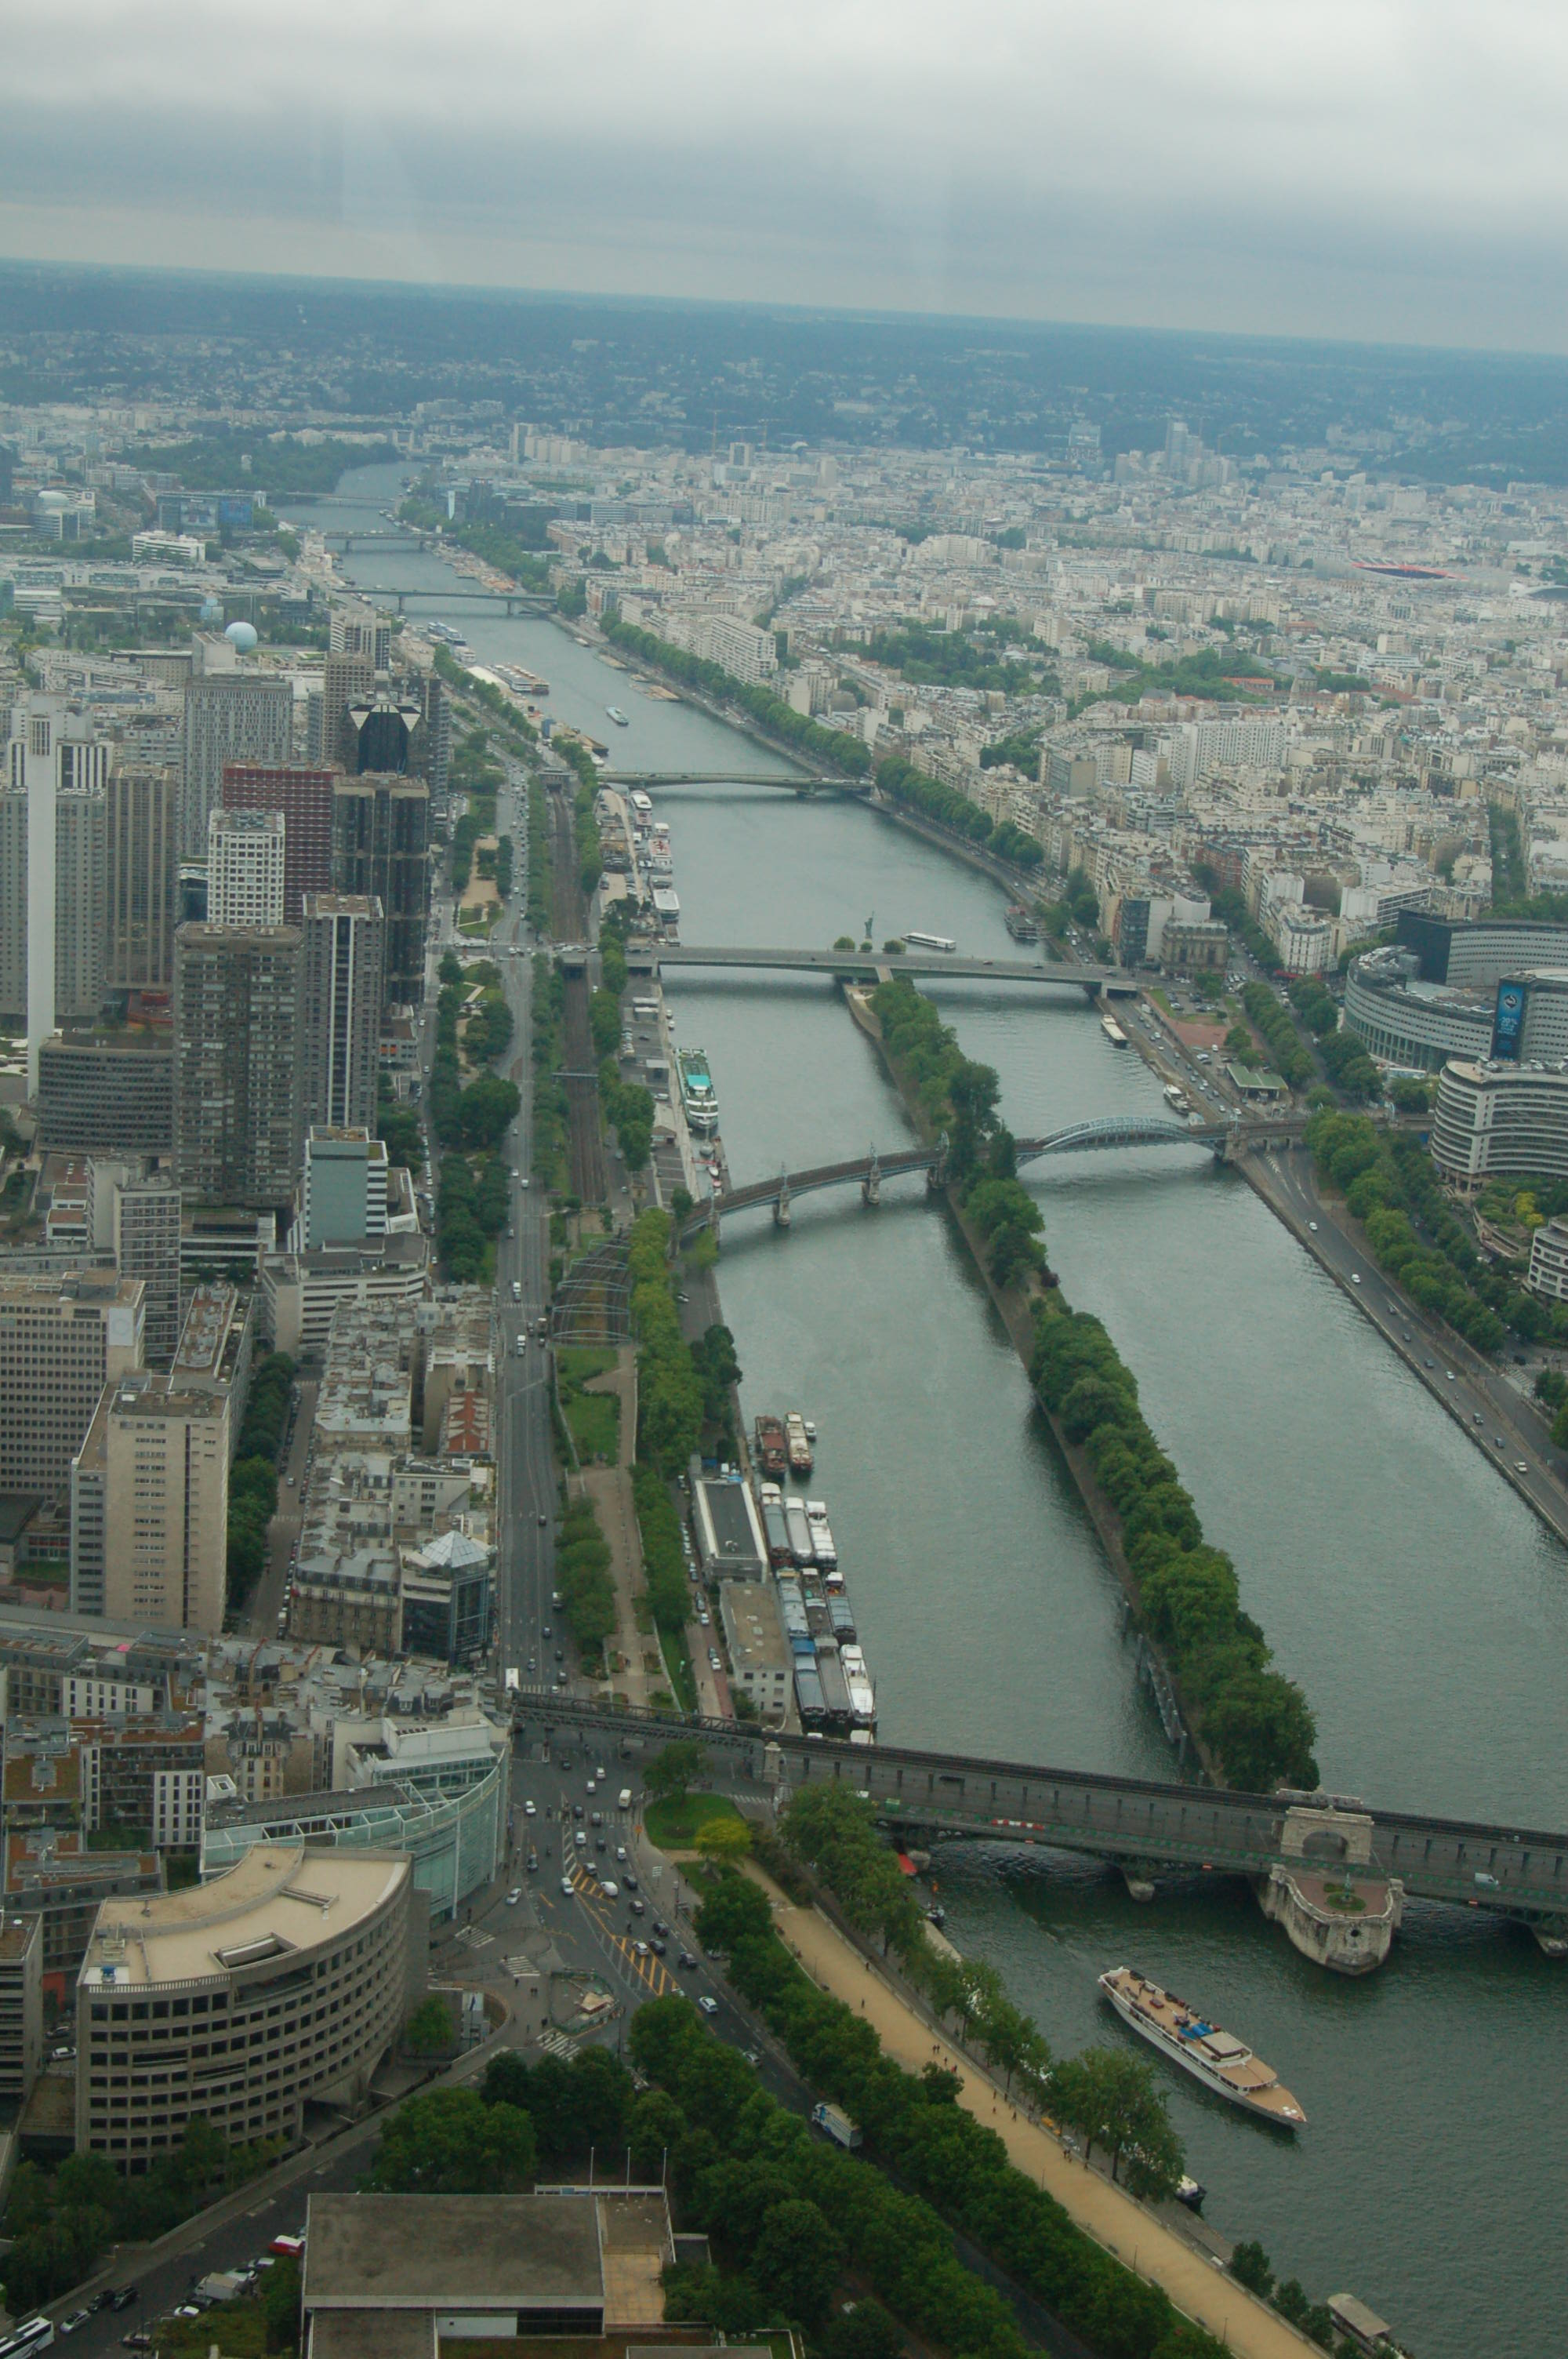 Looking Down On The River Seine